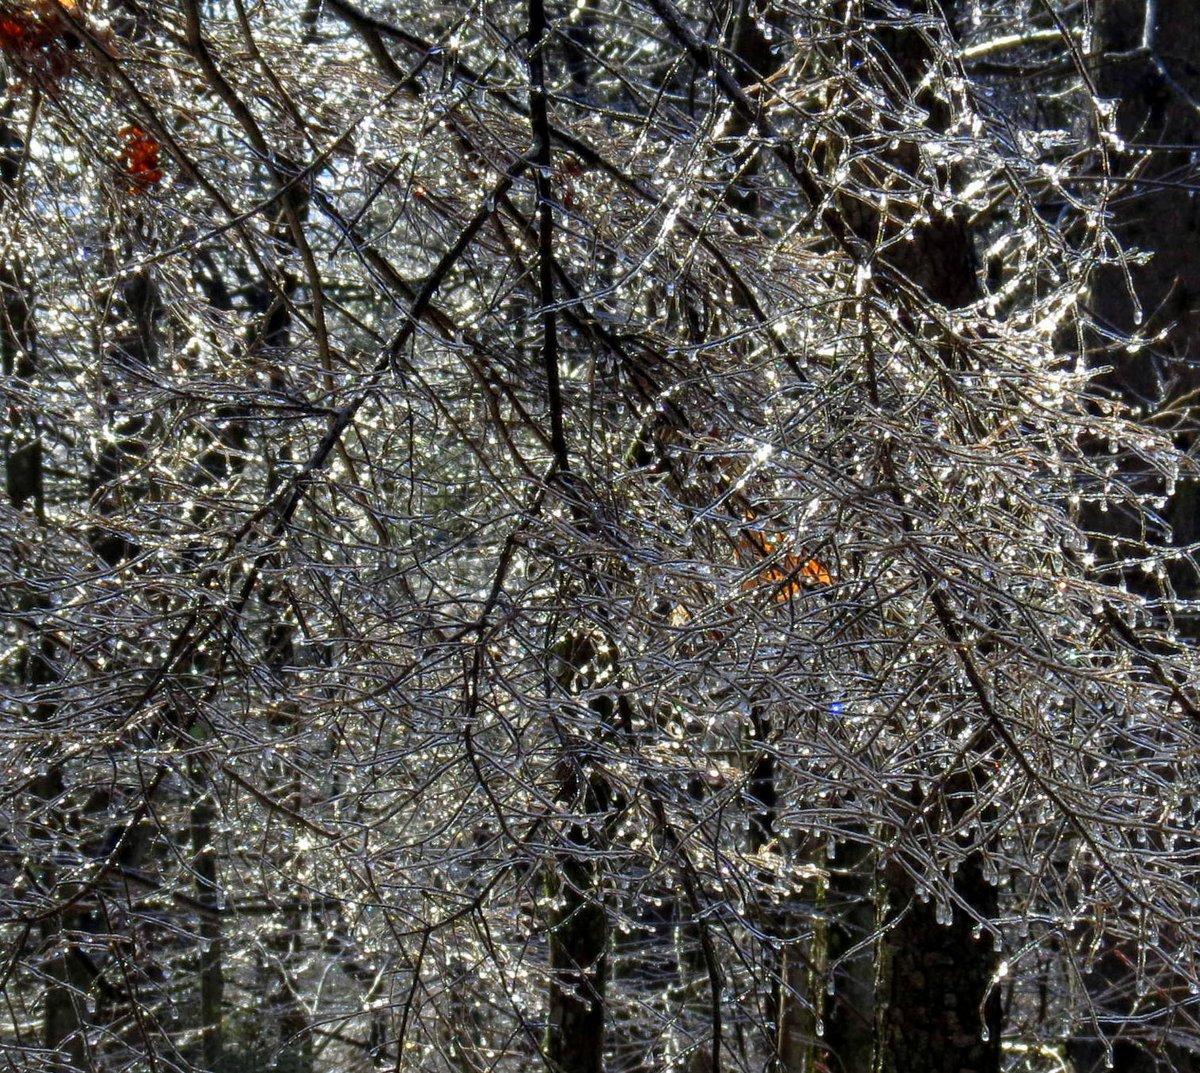 9. Icy Branches